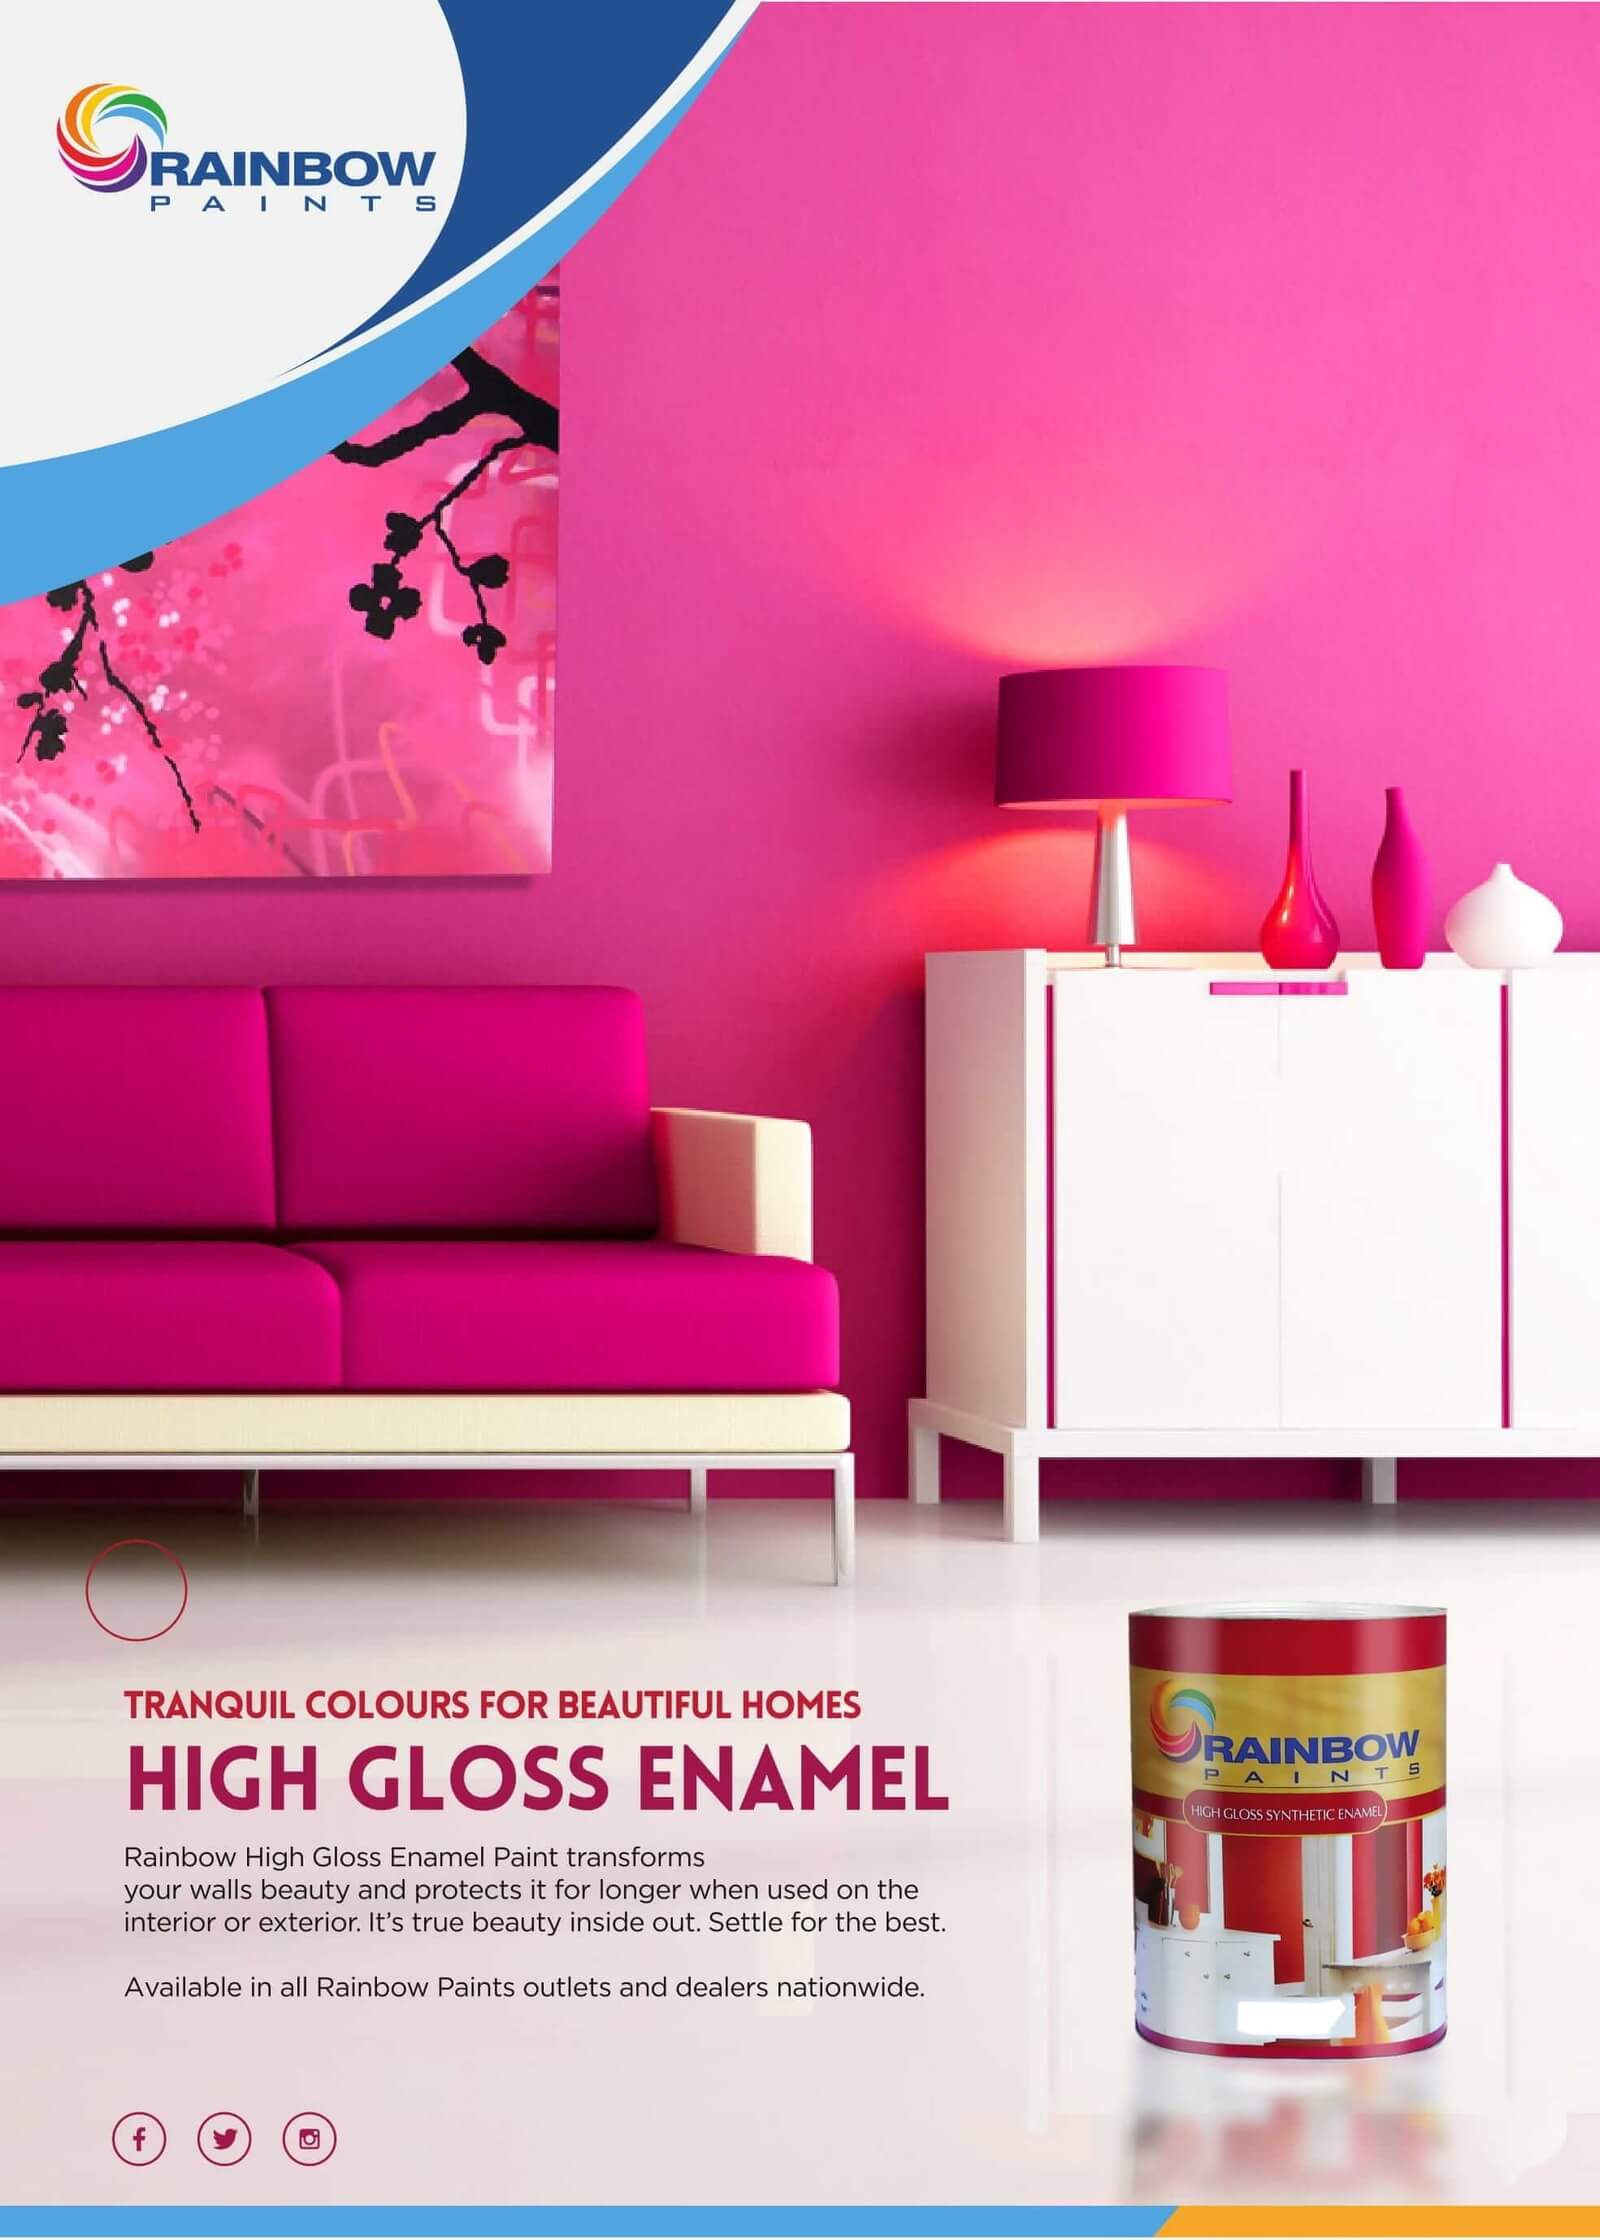 Tranquil Colours For Your Home...